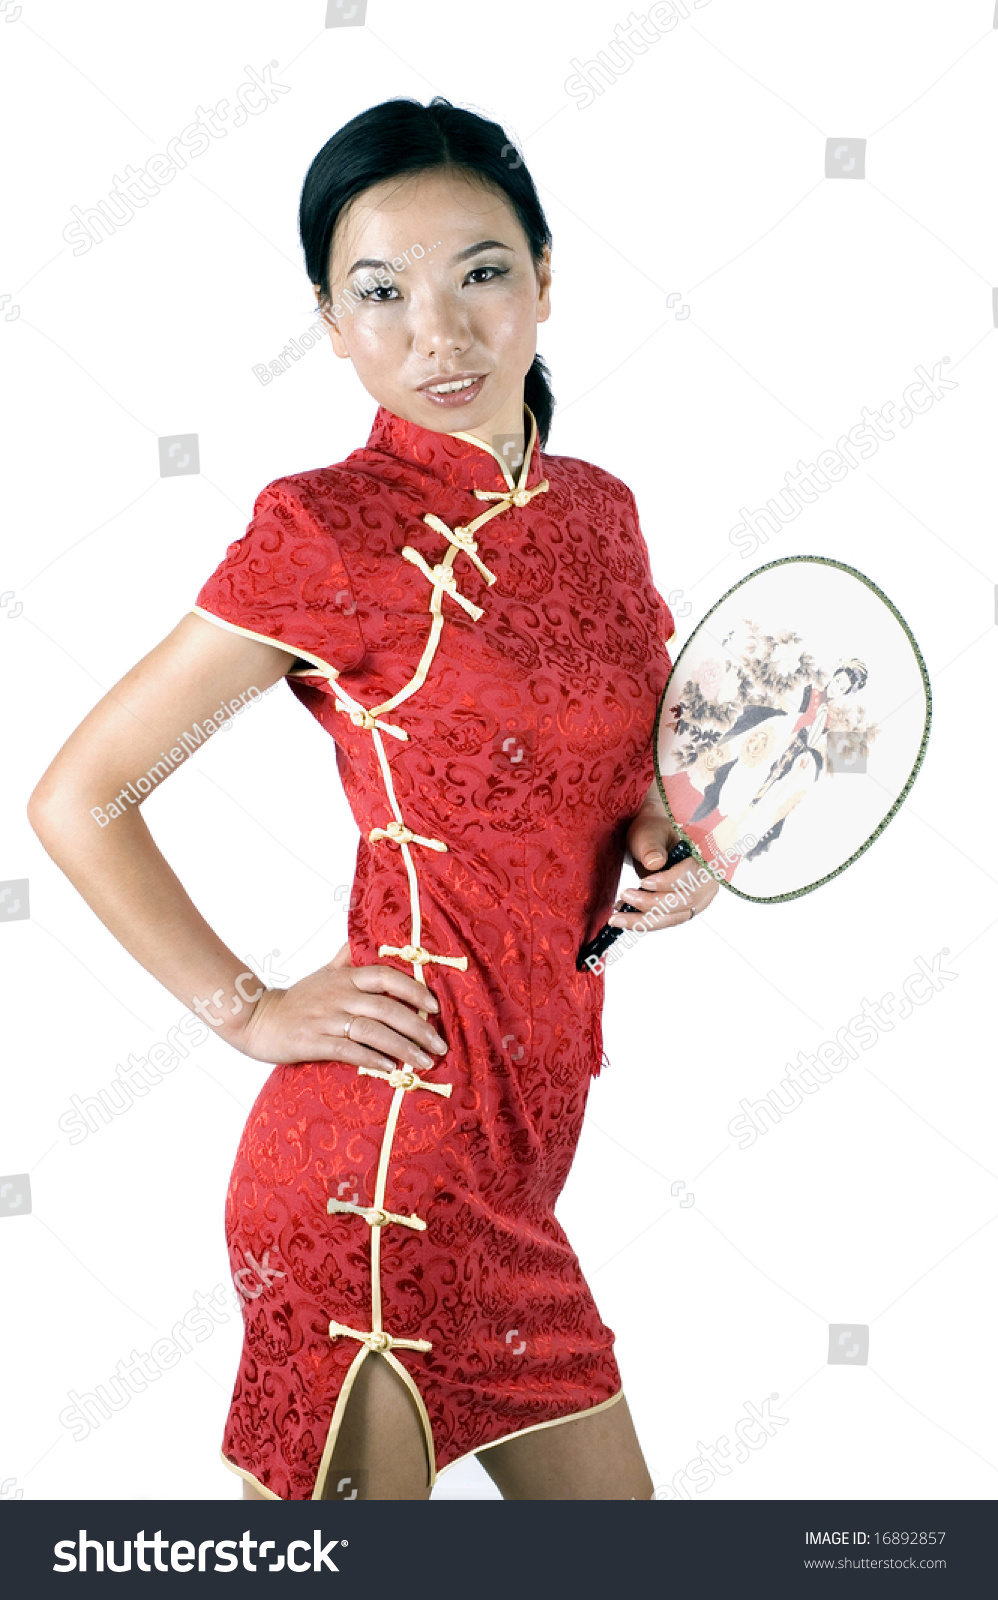 3c637e553 Asian girl in traditional Chinese dress called QiPao, holding simple fan.